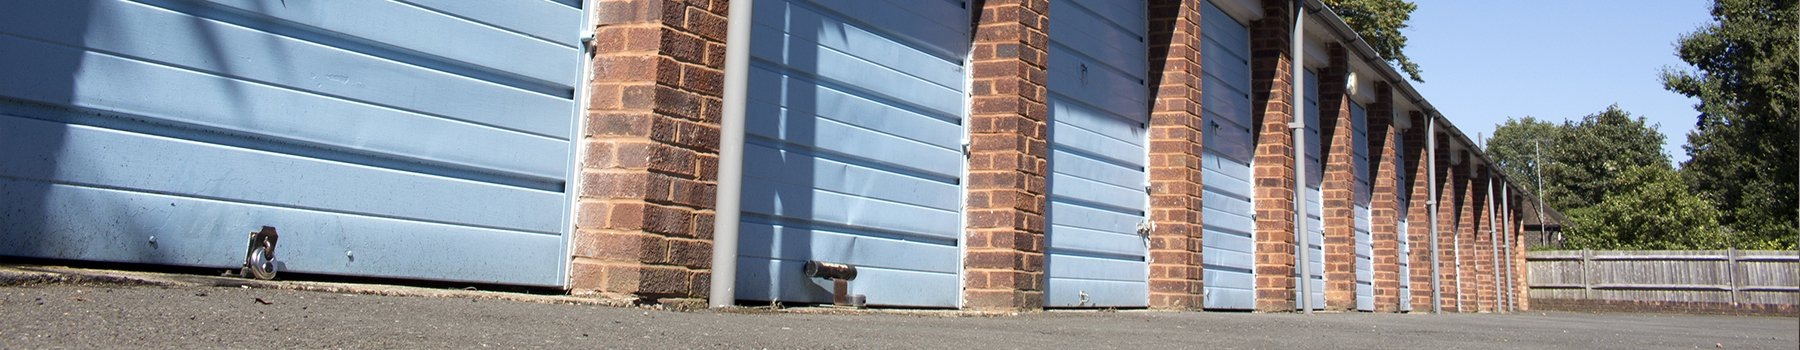 Garages to rent in East Anglia